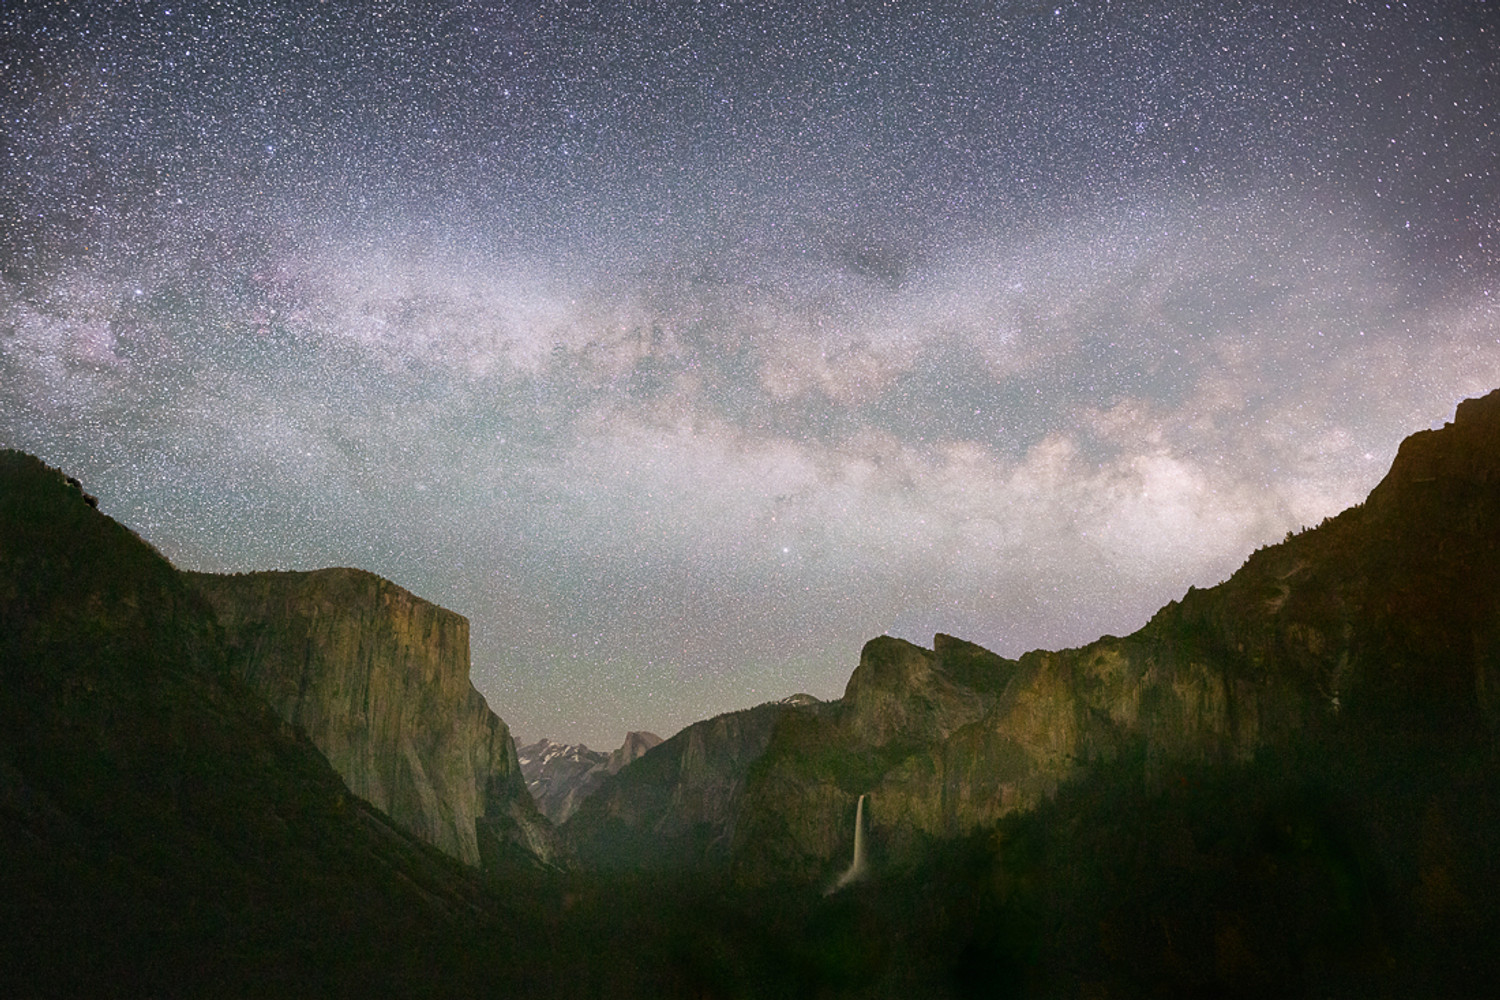 Night  in Yosemite National Park